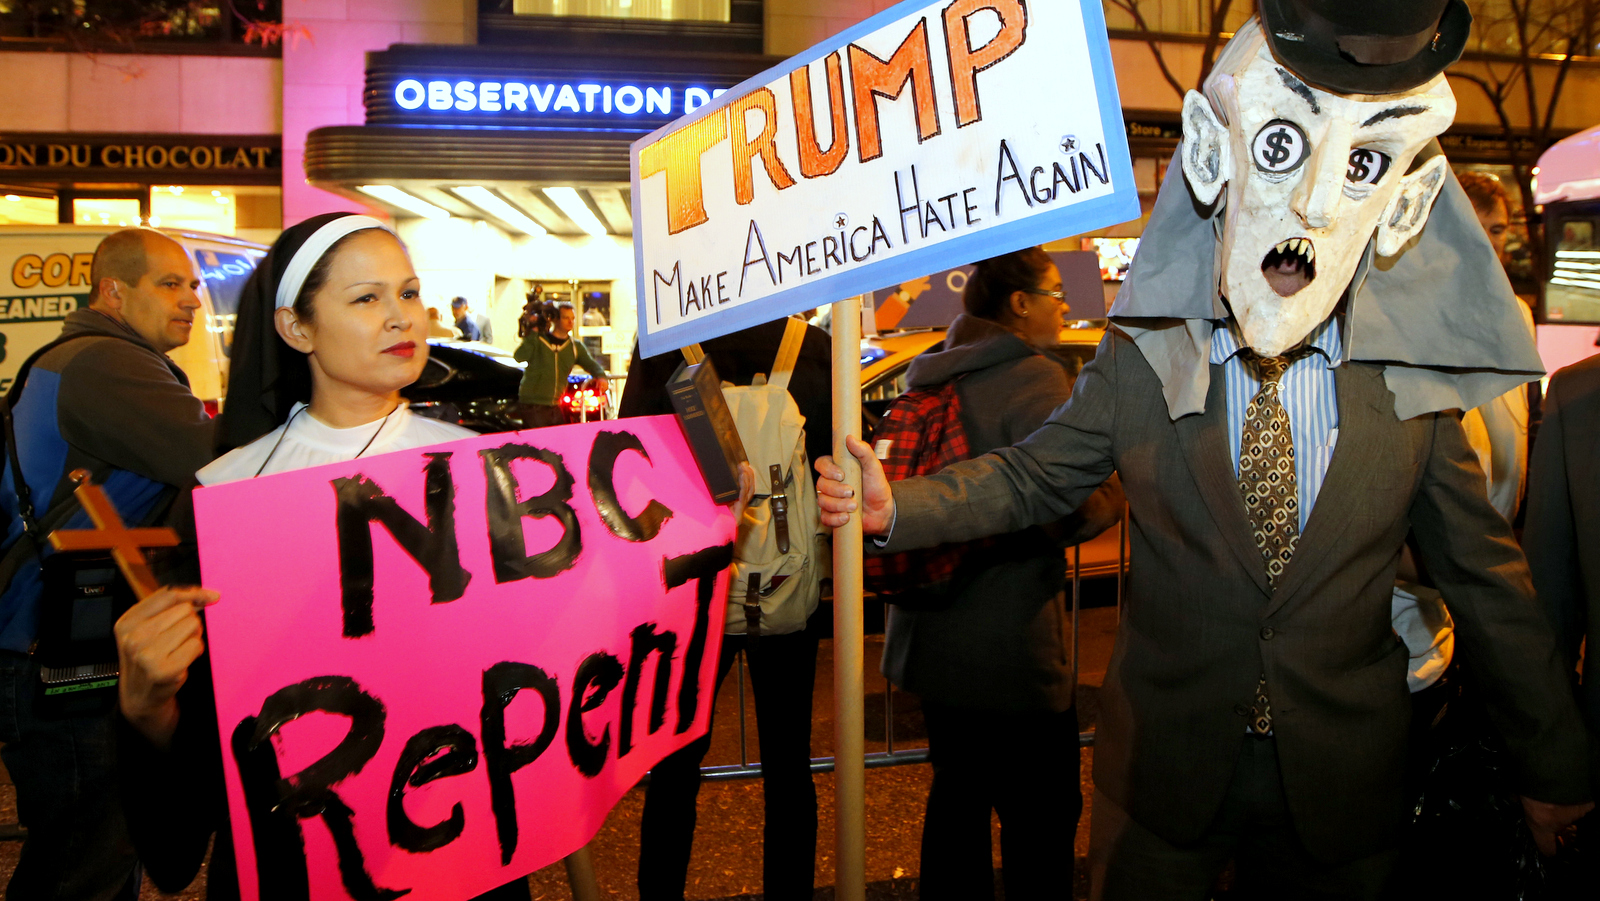 """Protesters opposed to the appearance of Republican presidential candidate Donald Trump as a guest host on this weekend's """"Saturday Night Live,"""" demonstrate in front of NBC Studios where the television show is taped and broadcast, Wednesday, Nov. 4, 2015, in New York. (AP Photo/Kathy Willens)"""